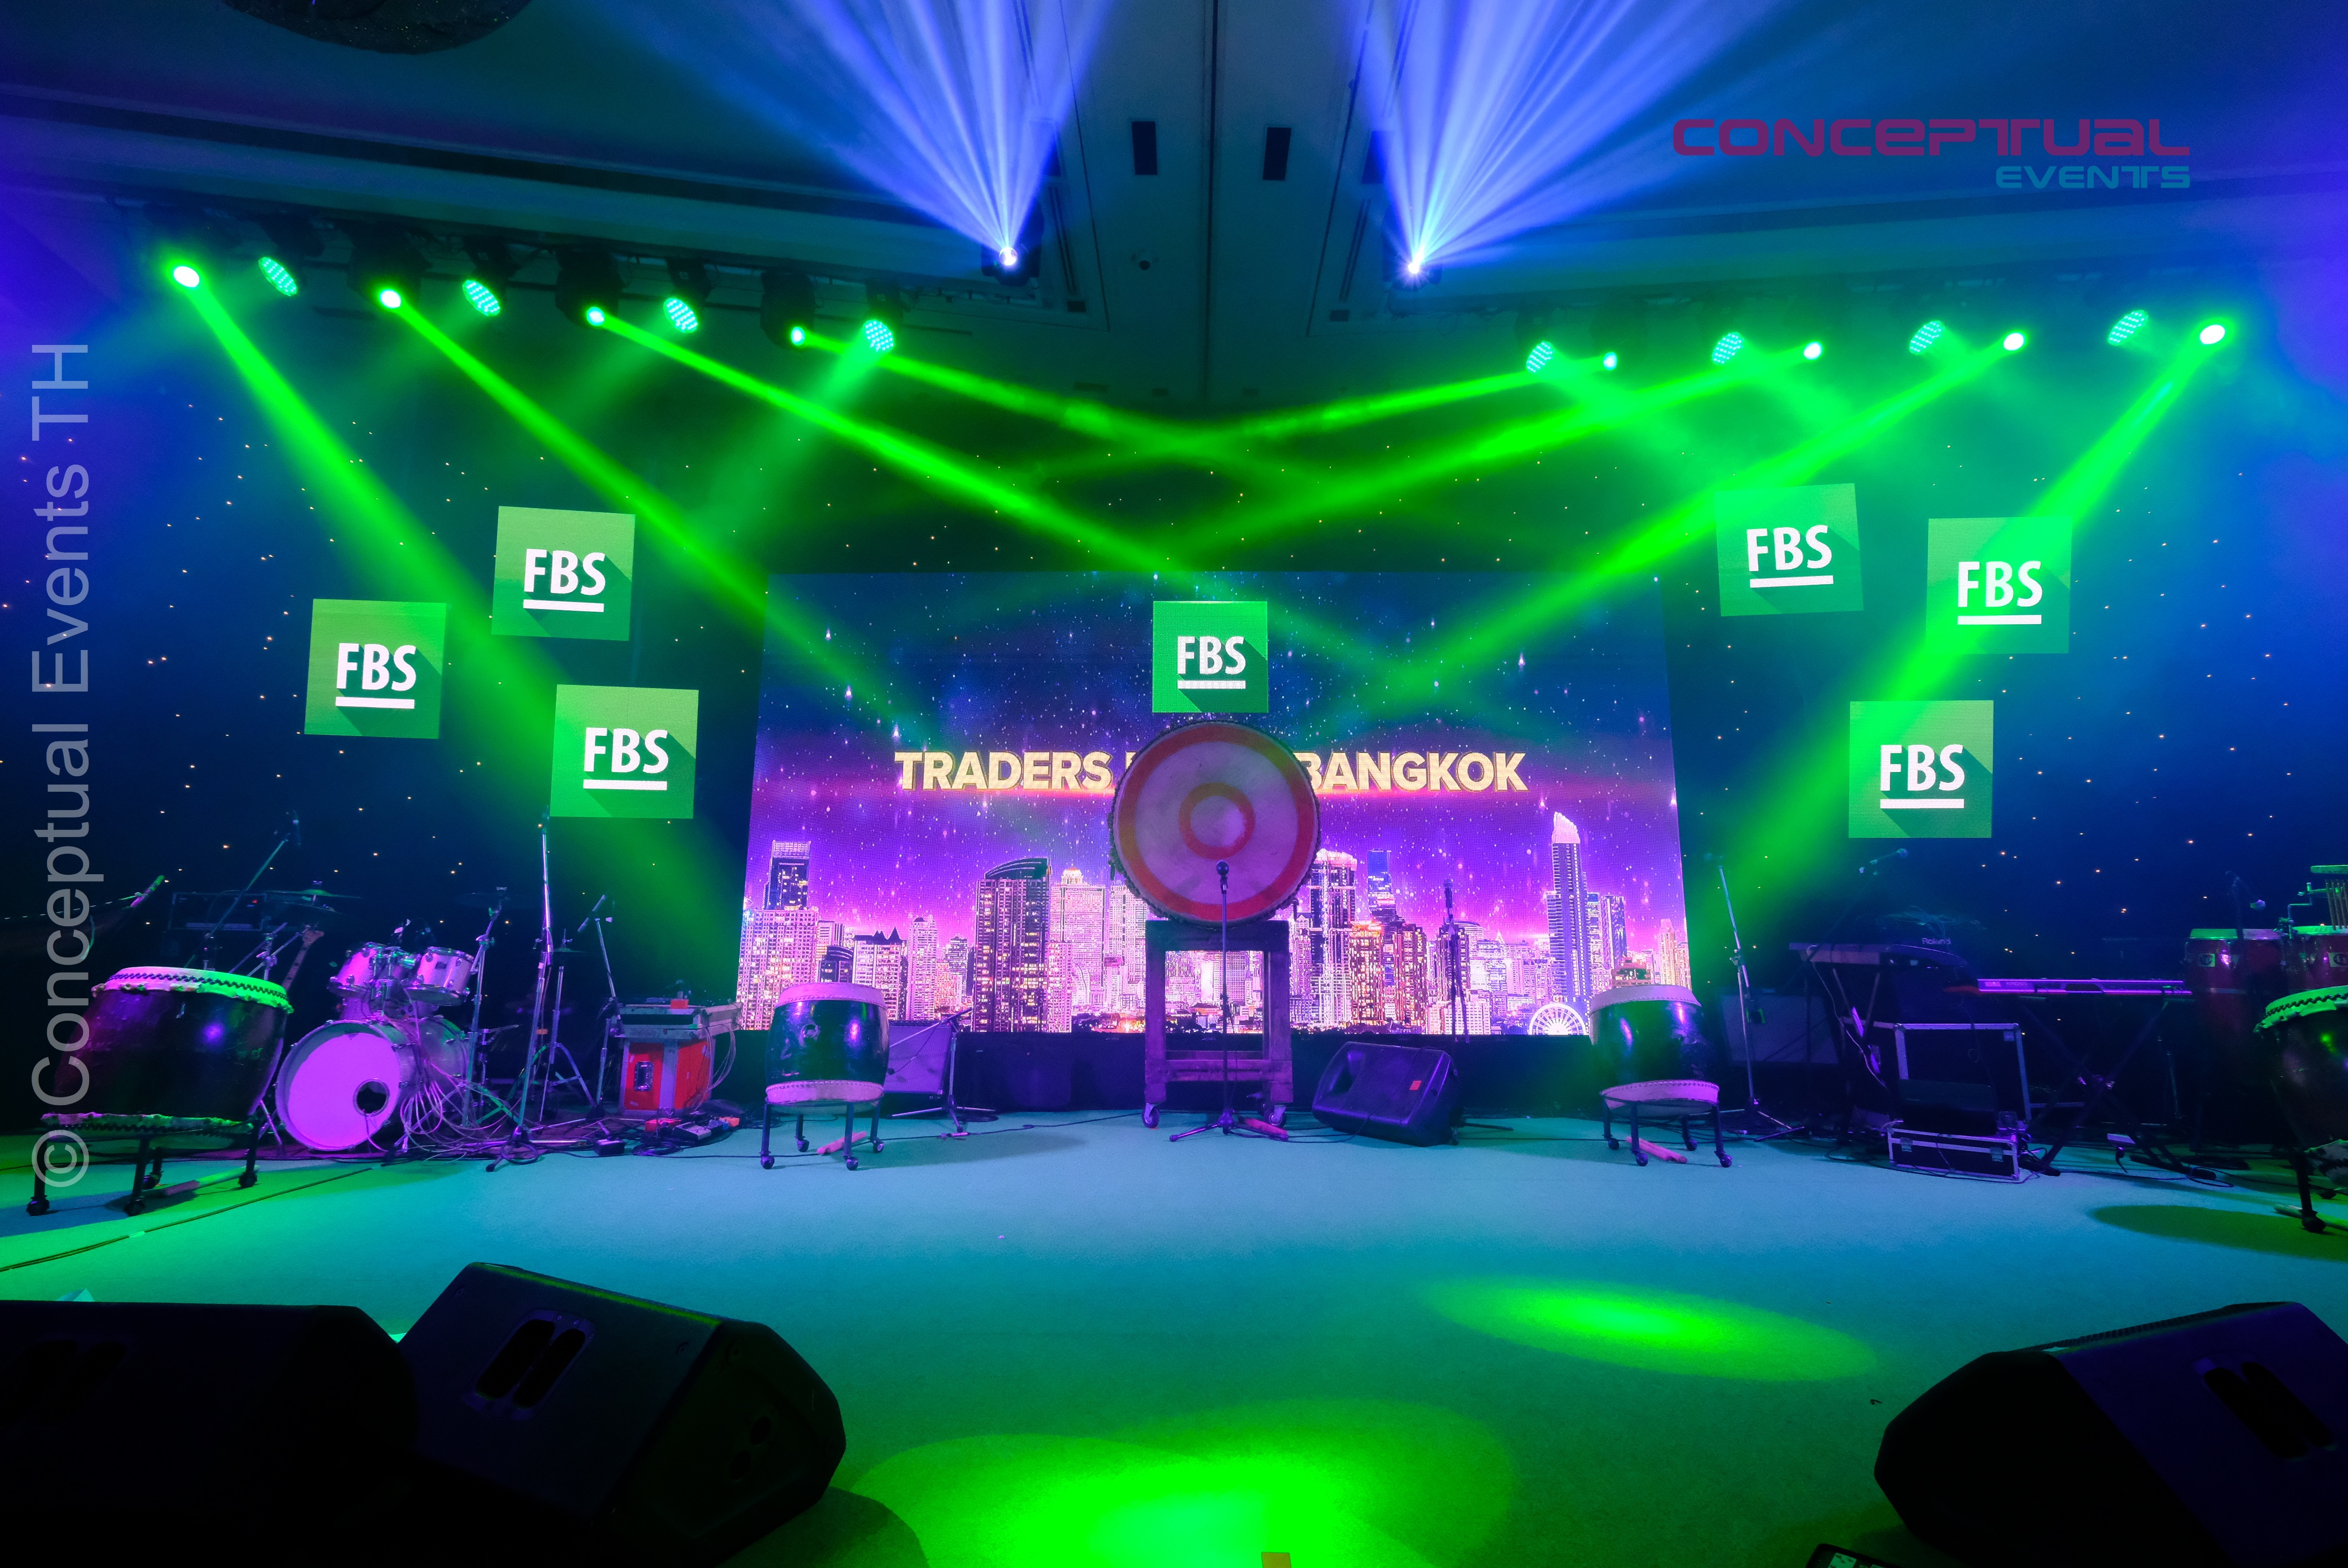 LED Screen for FBS Traders Party